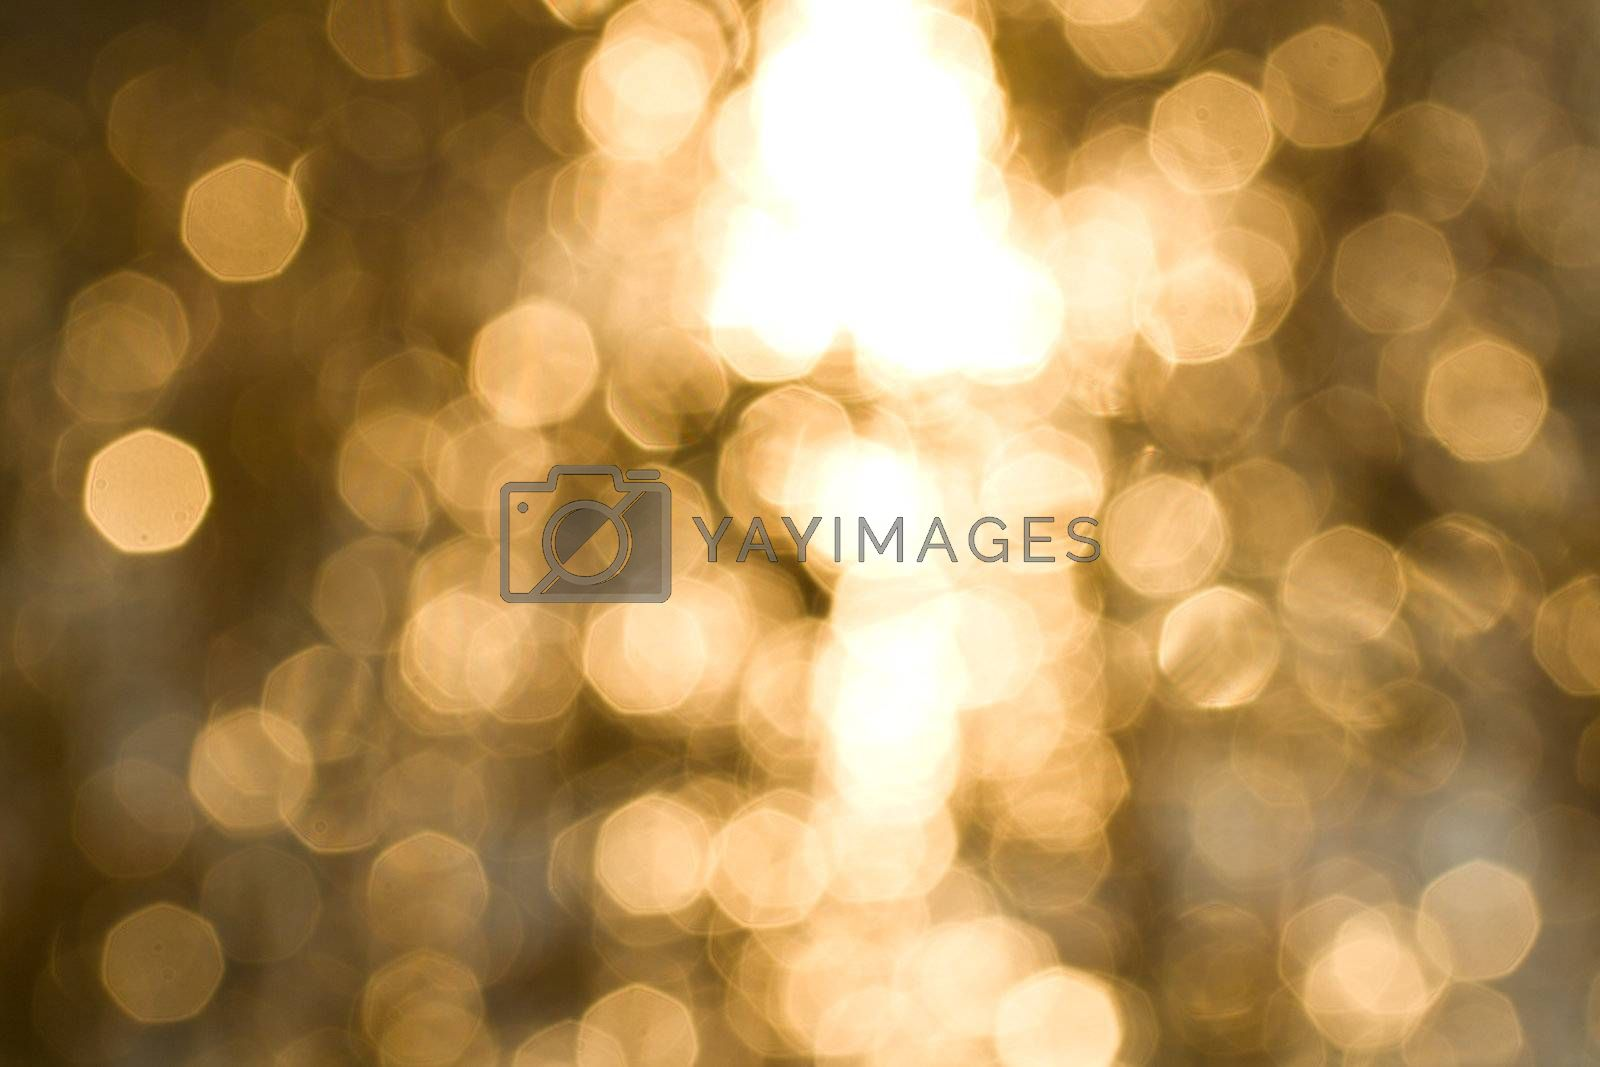 Royalty free image of abstract gold background by Alekcey